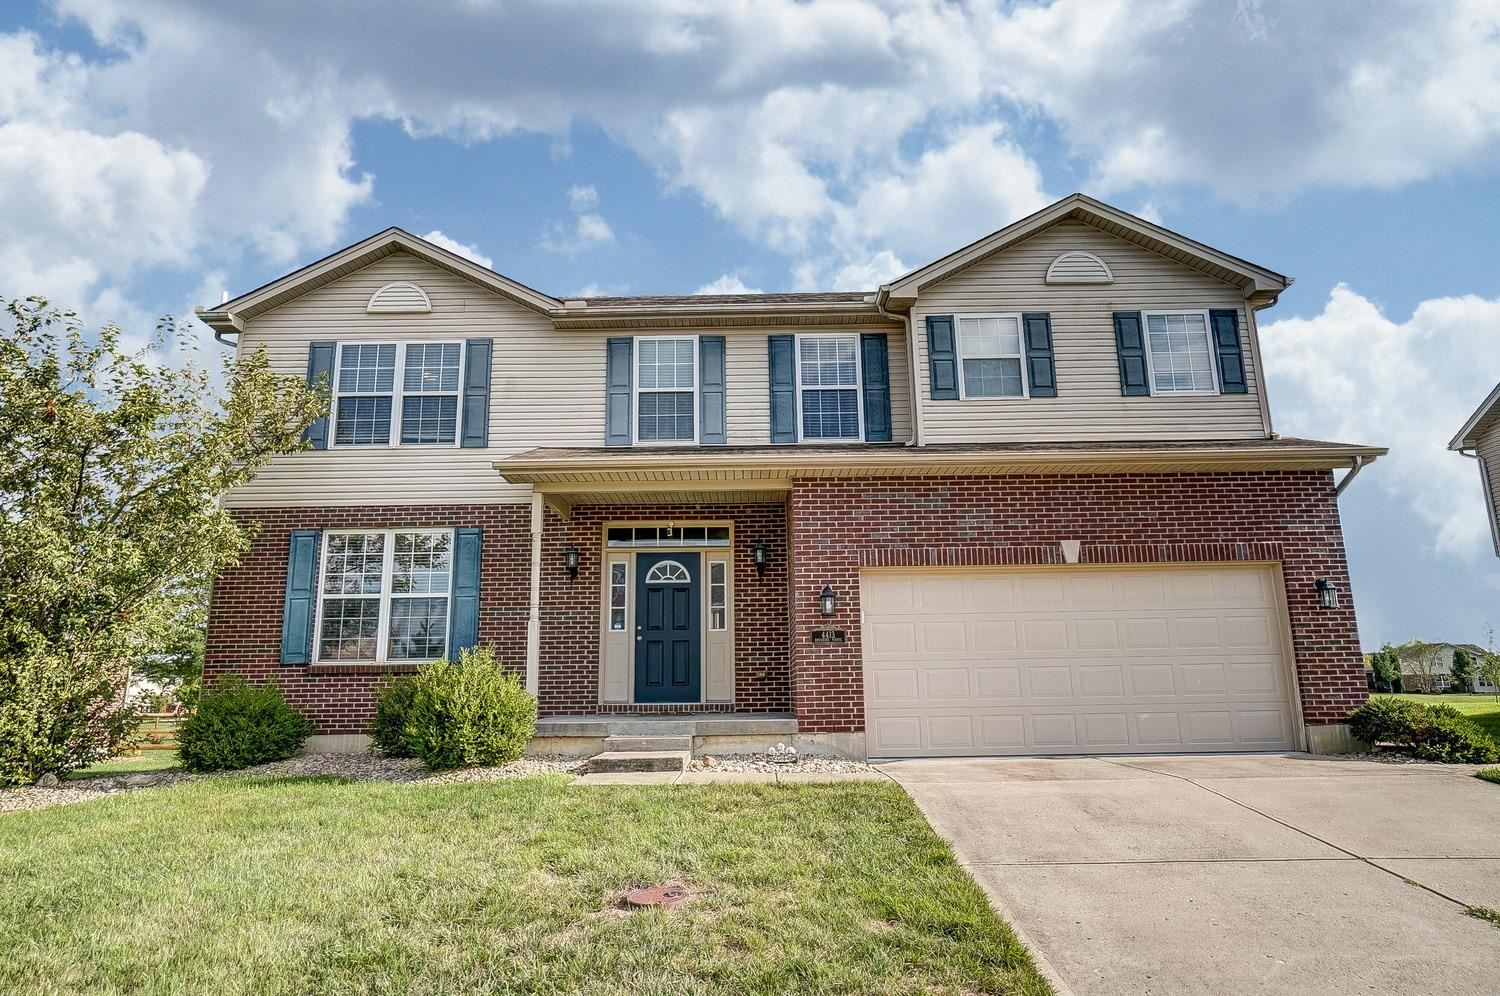 4413 Breakers Point, West Chester, OH 45069 - #: 1671384